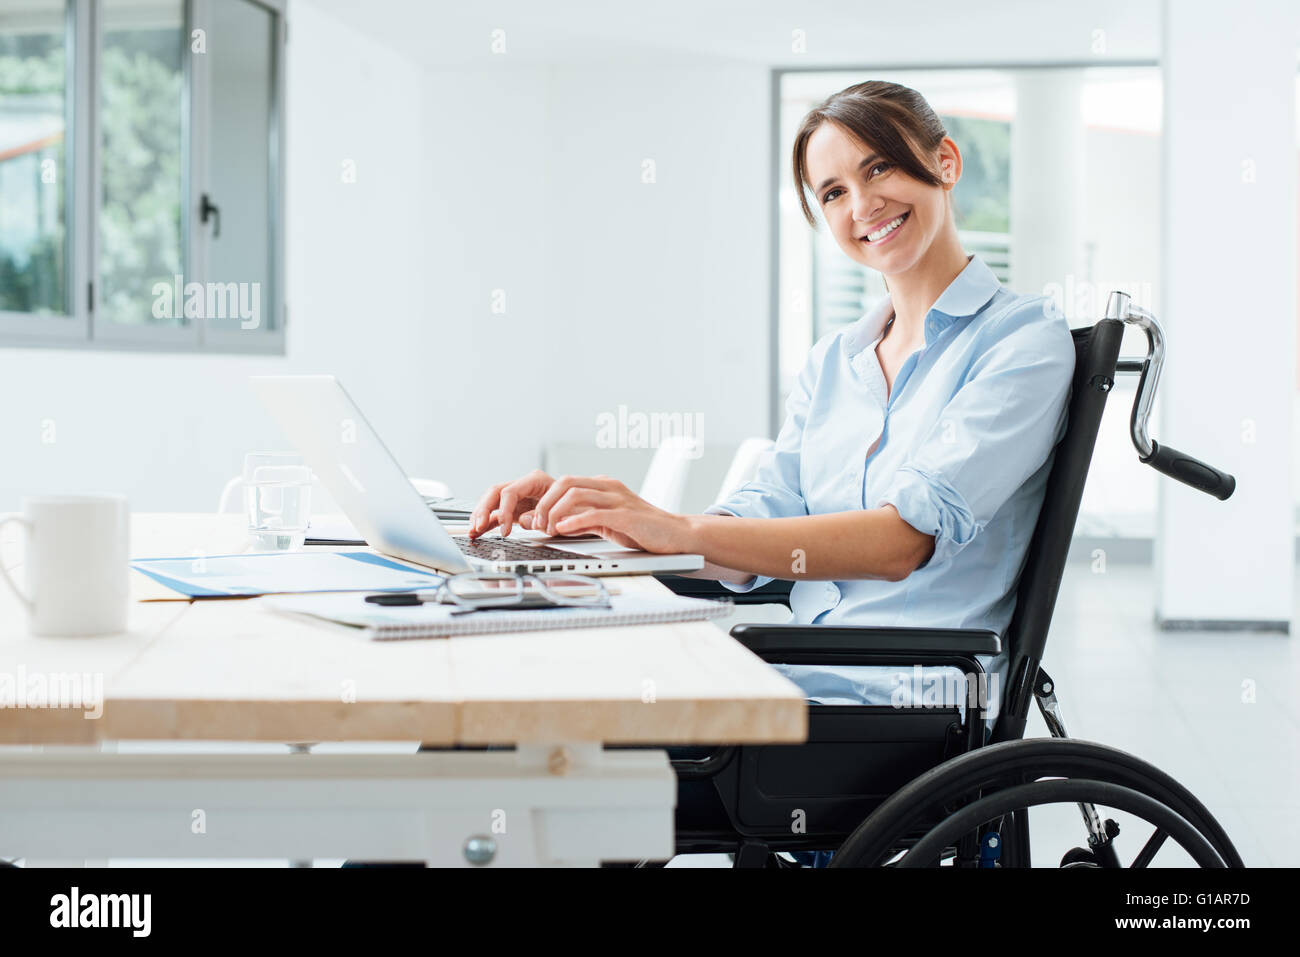 Confident happy businesswoman in wheelchair working at office desk and using a laptop, she is smiling at camera, - Stock Image